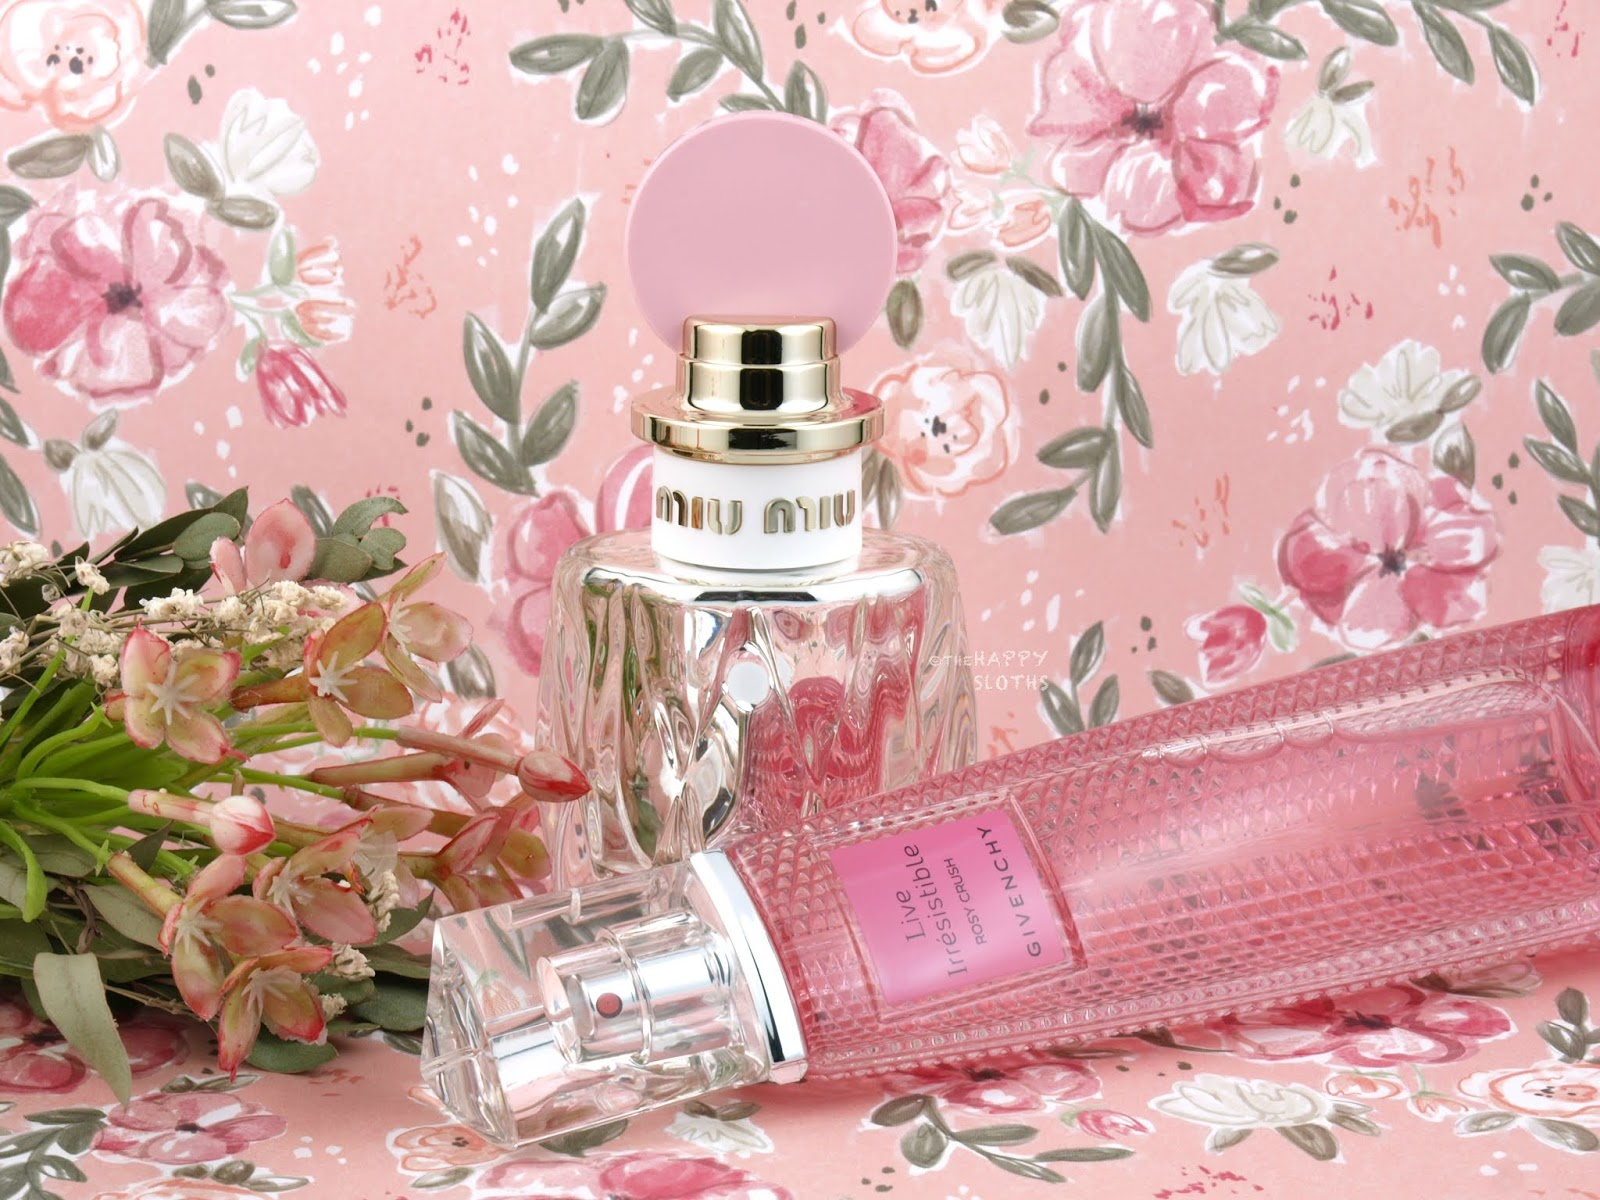 Fragrances for Valentine's Day 2019 | Miu Miu Fleur d'Argent Eau de Parfum Absolue & Givenchy Live Irrésistible Rosy Crush Eau de Parfum: Review